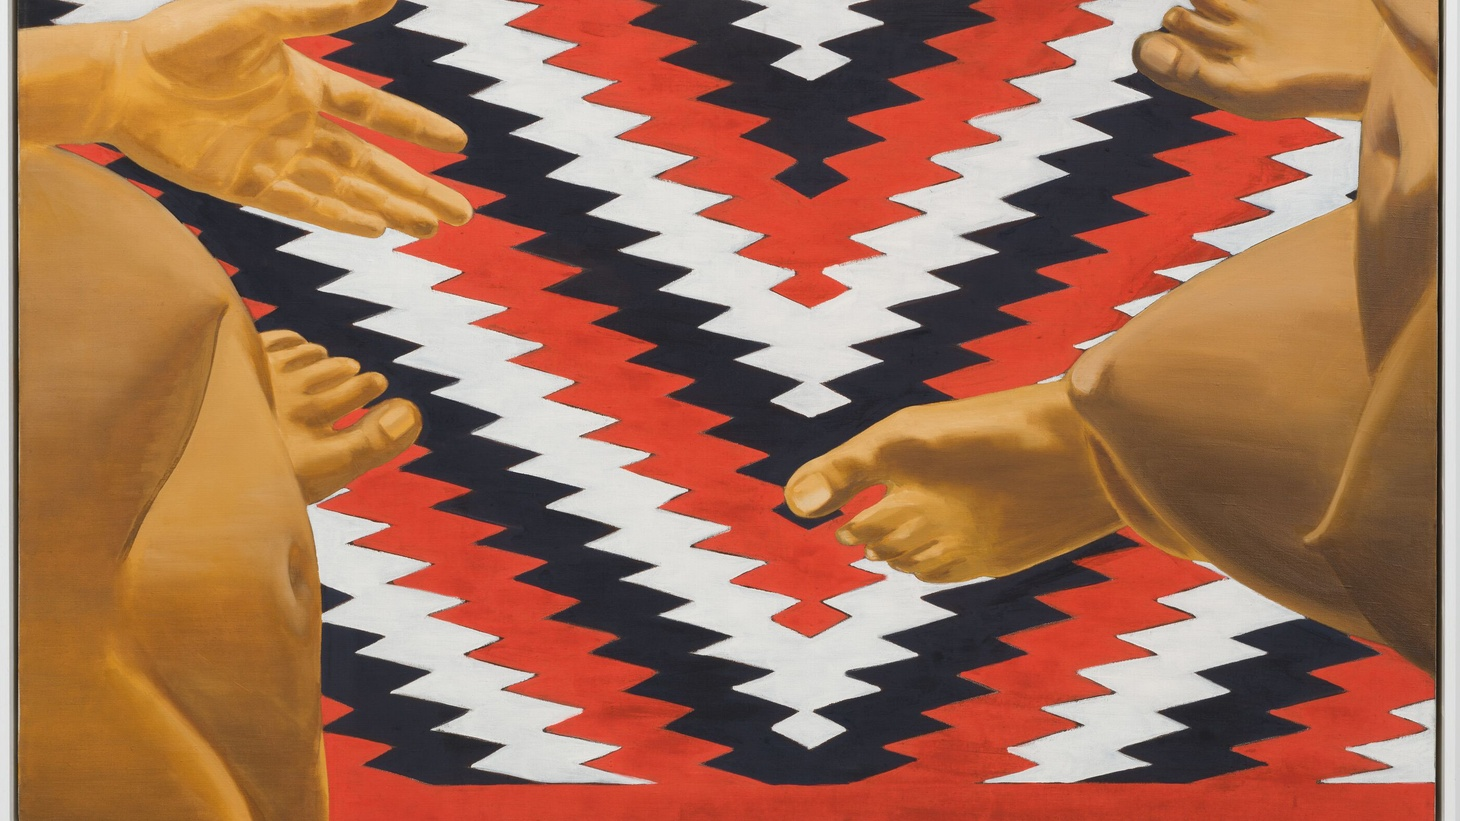 Lead Photo:Luchita Hurtado, Untitled (detail) (1970). Oil on canvas, 30 x 50 inches. Image of the artist and Hauser & Wirth, © Luchita Hurtado.